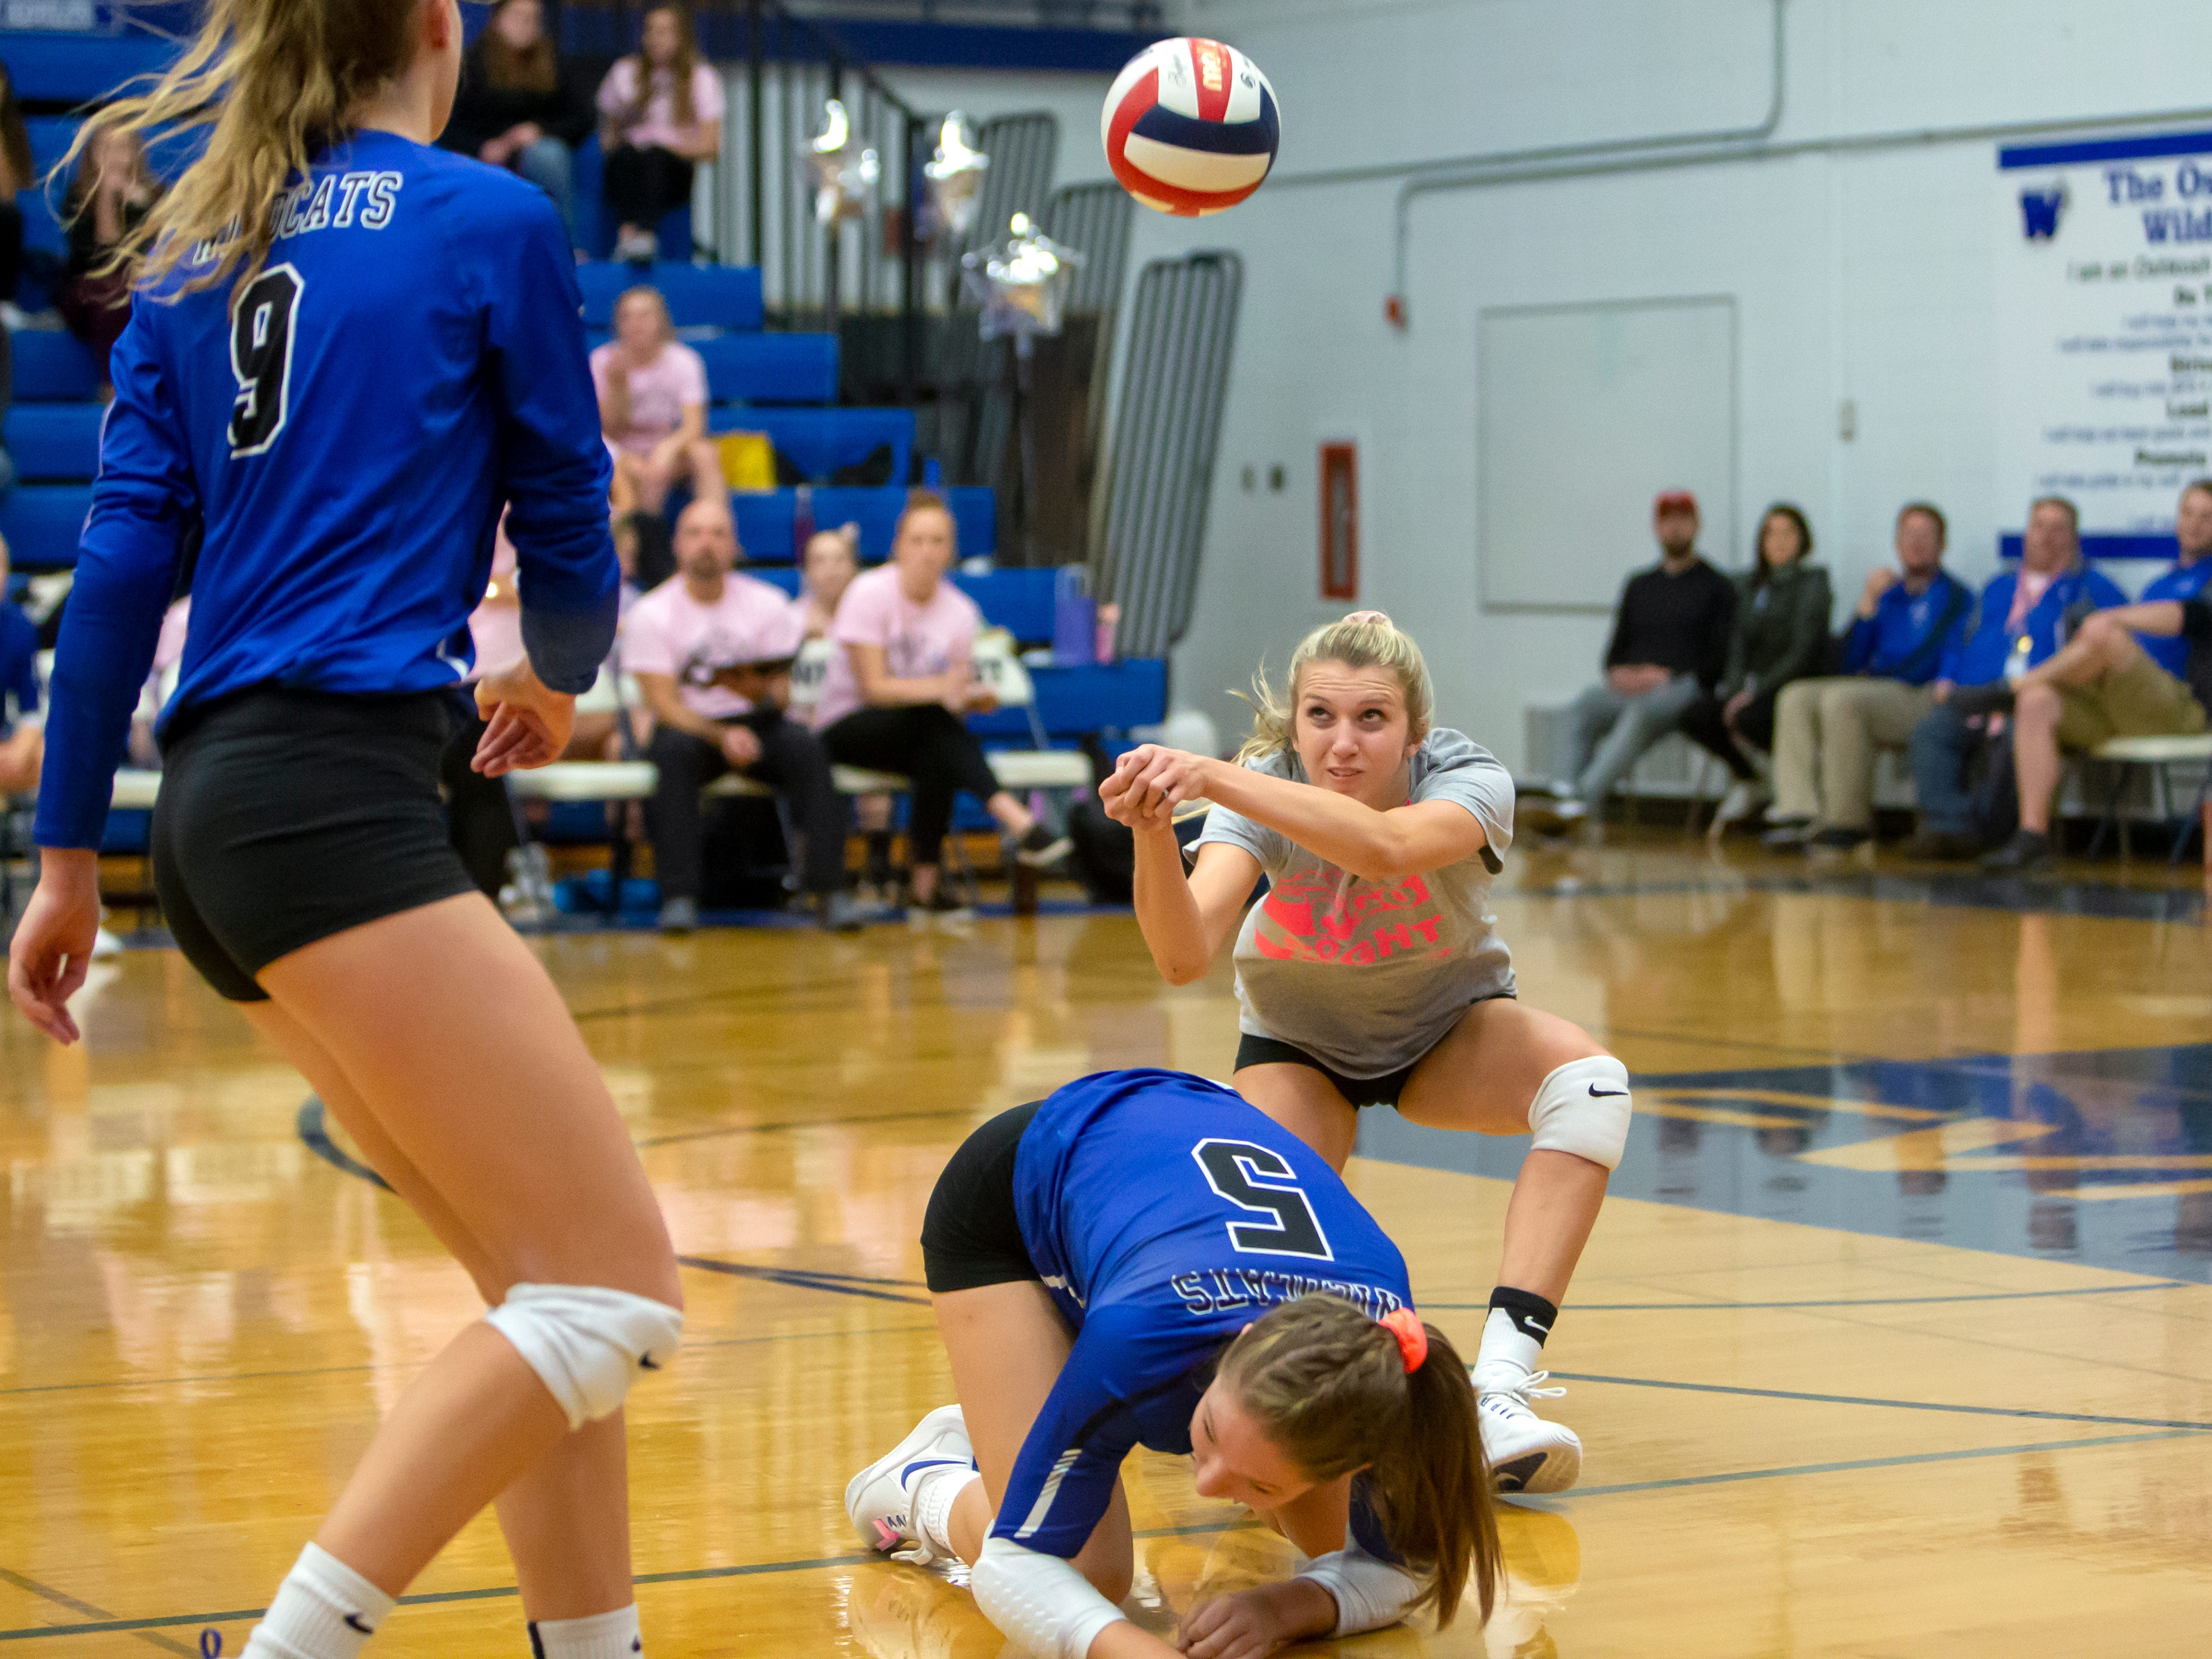 Oshkosh West's Callista Rochon-Baker dives for a bump with Rachel Mueller clearing the shot playing at Oshkosh West High School on Thursday, October 11, 2018.